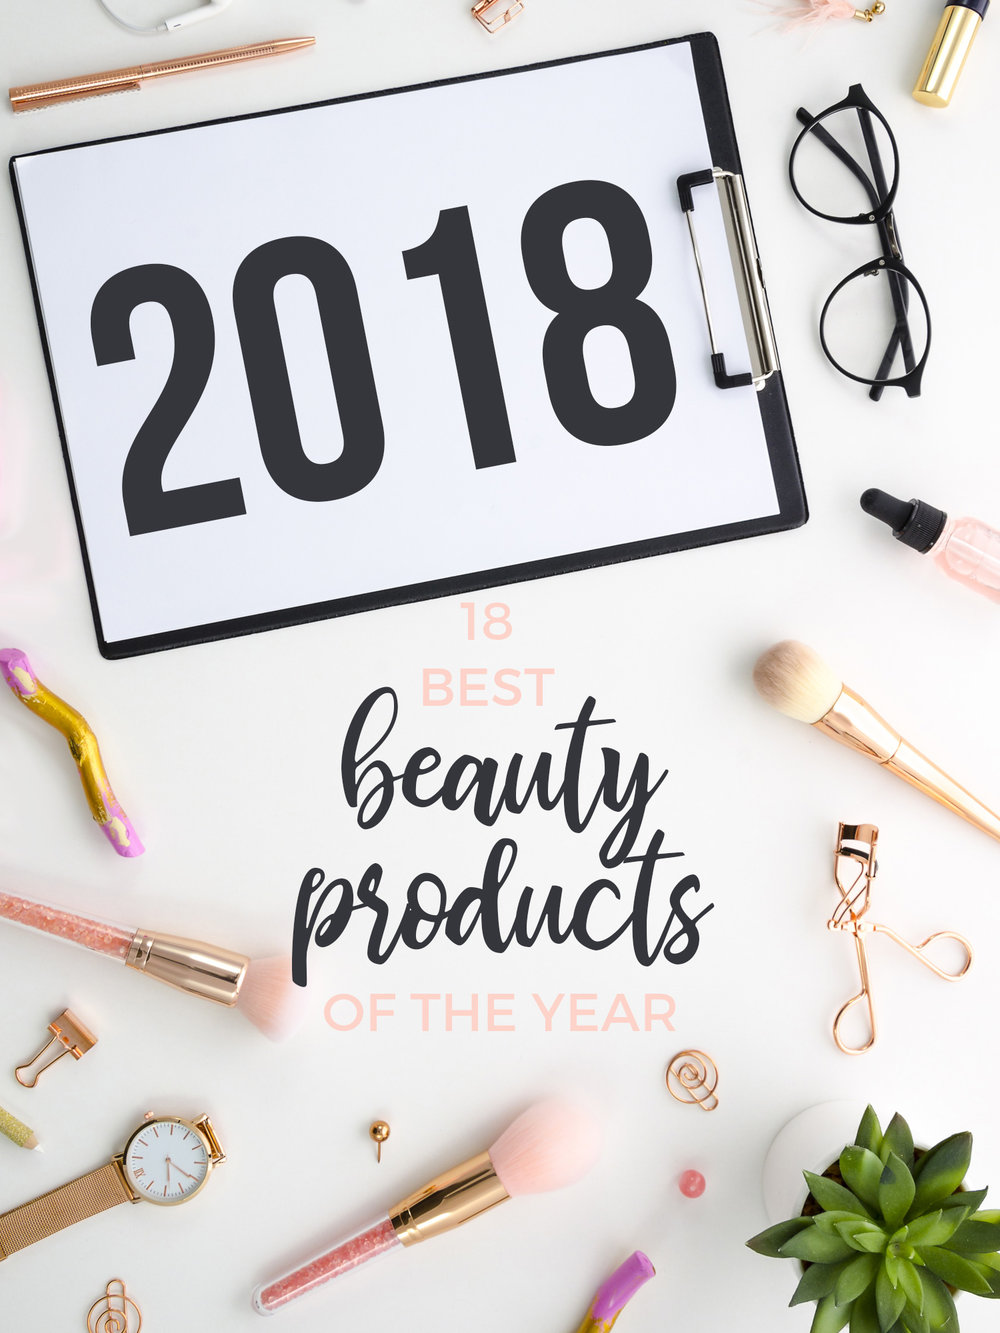 18 Best Beauty Products of 2018